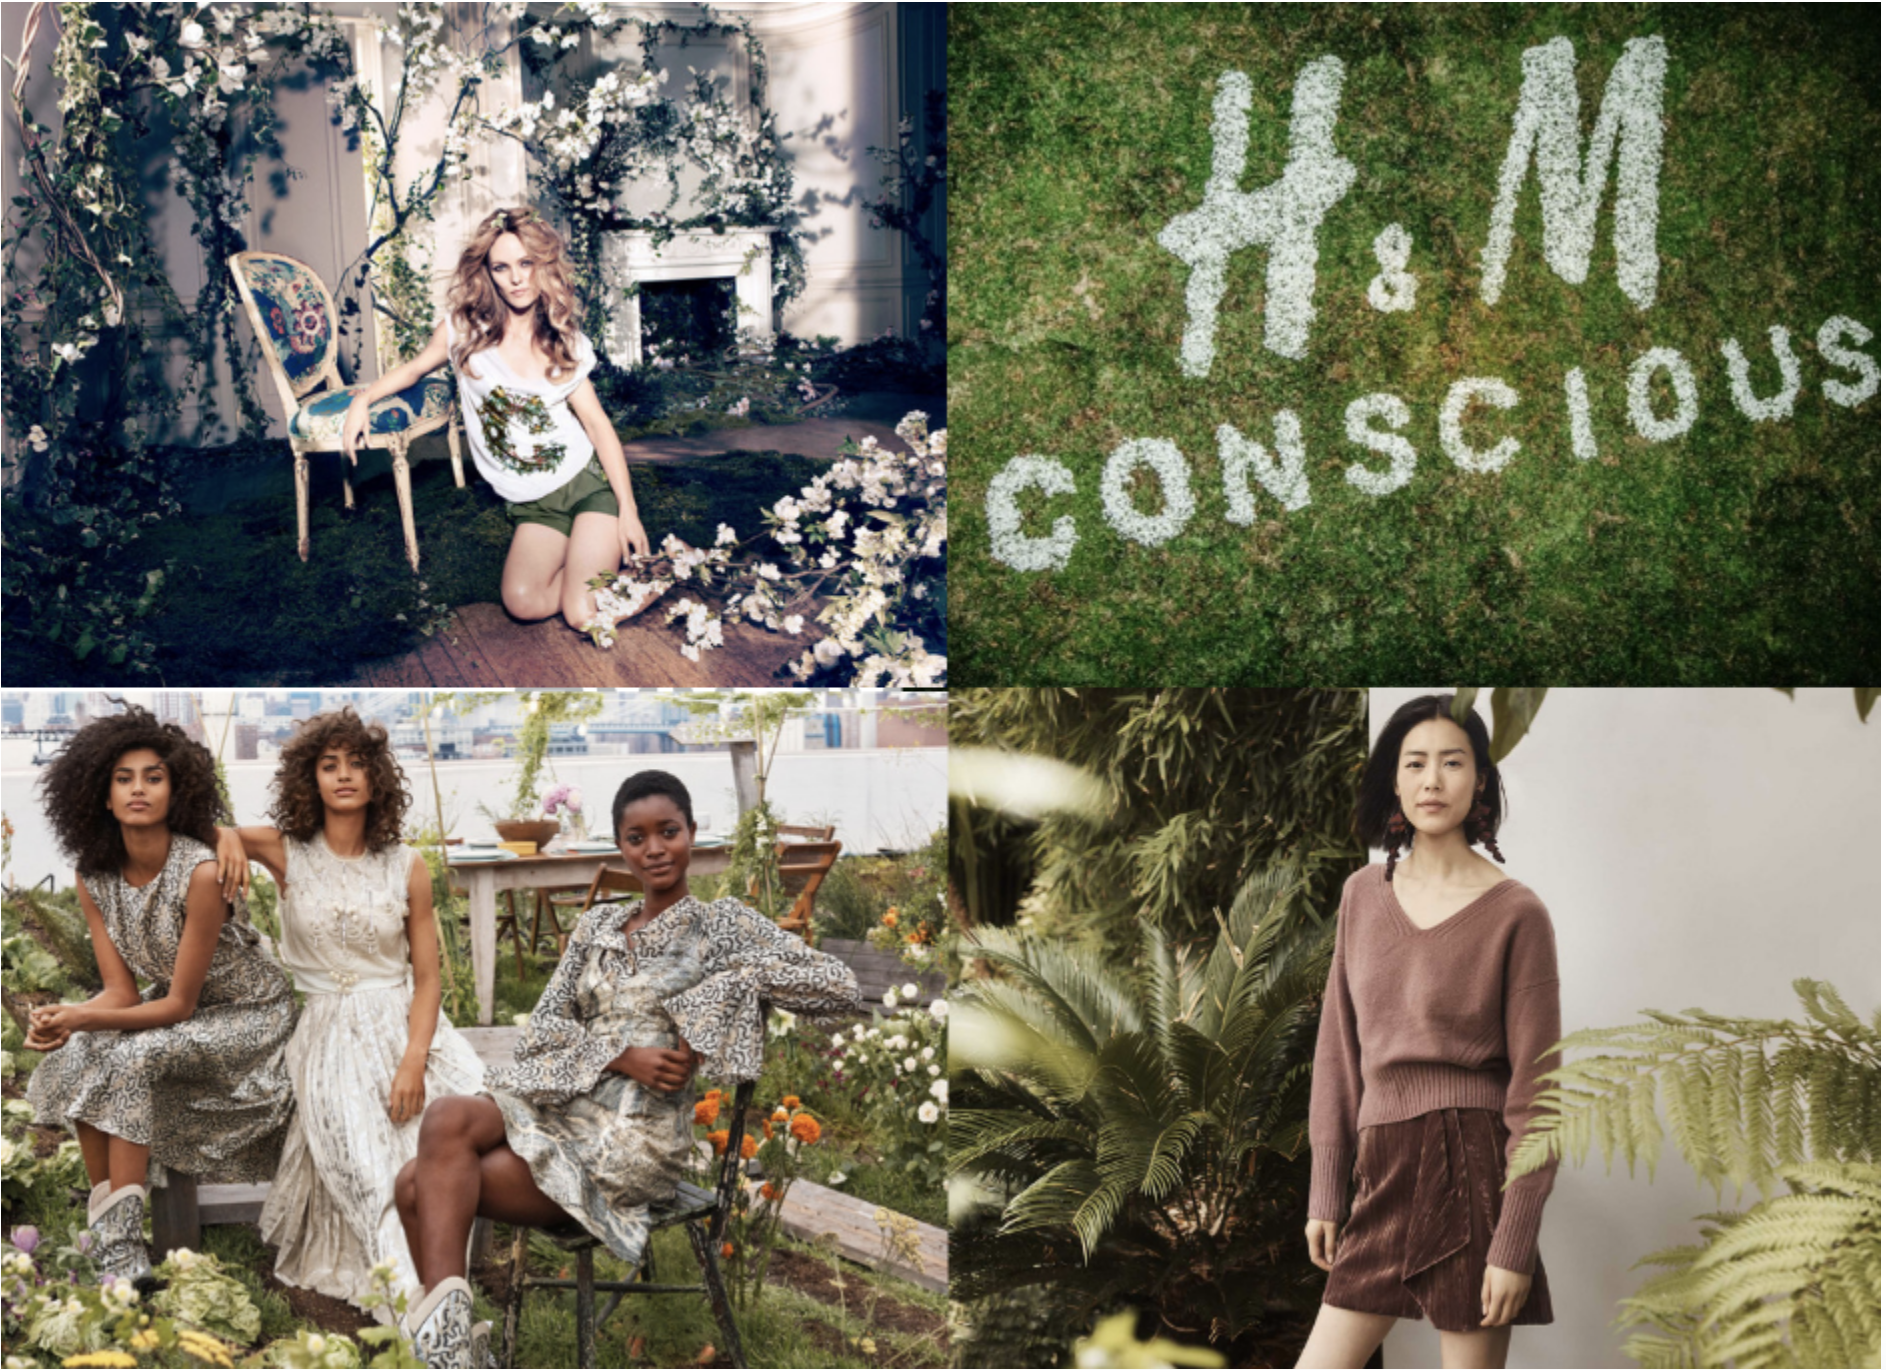 H&M Conscious marketing image 2019 from: https://medium.com/